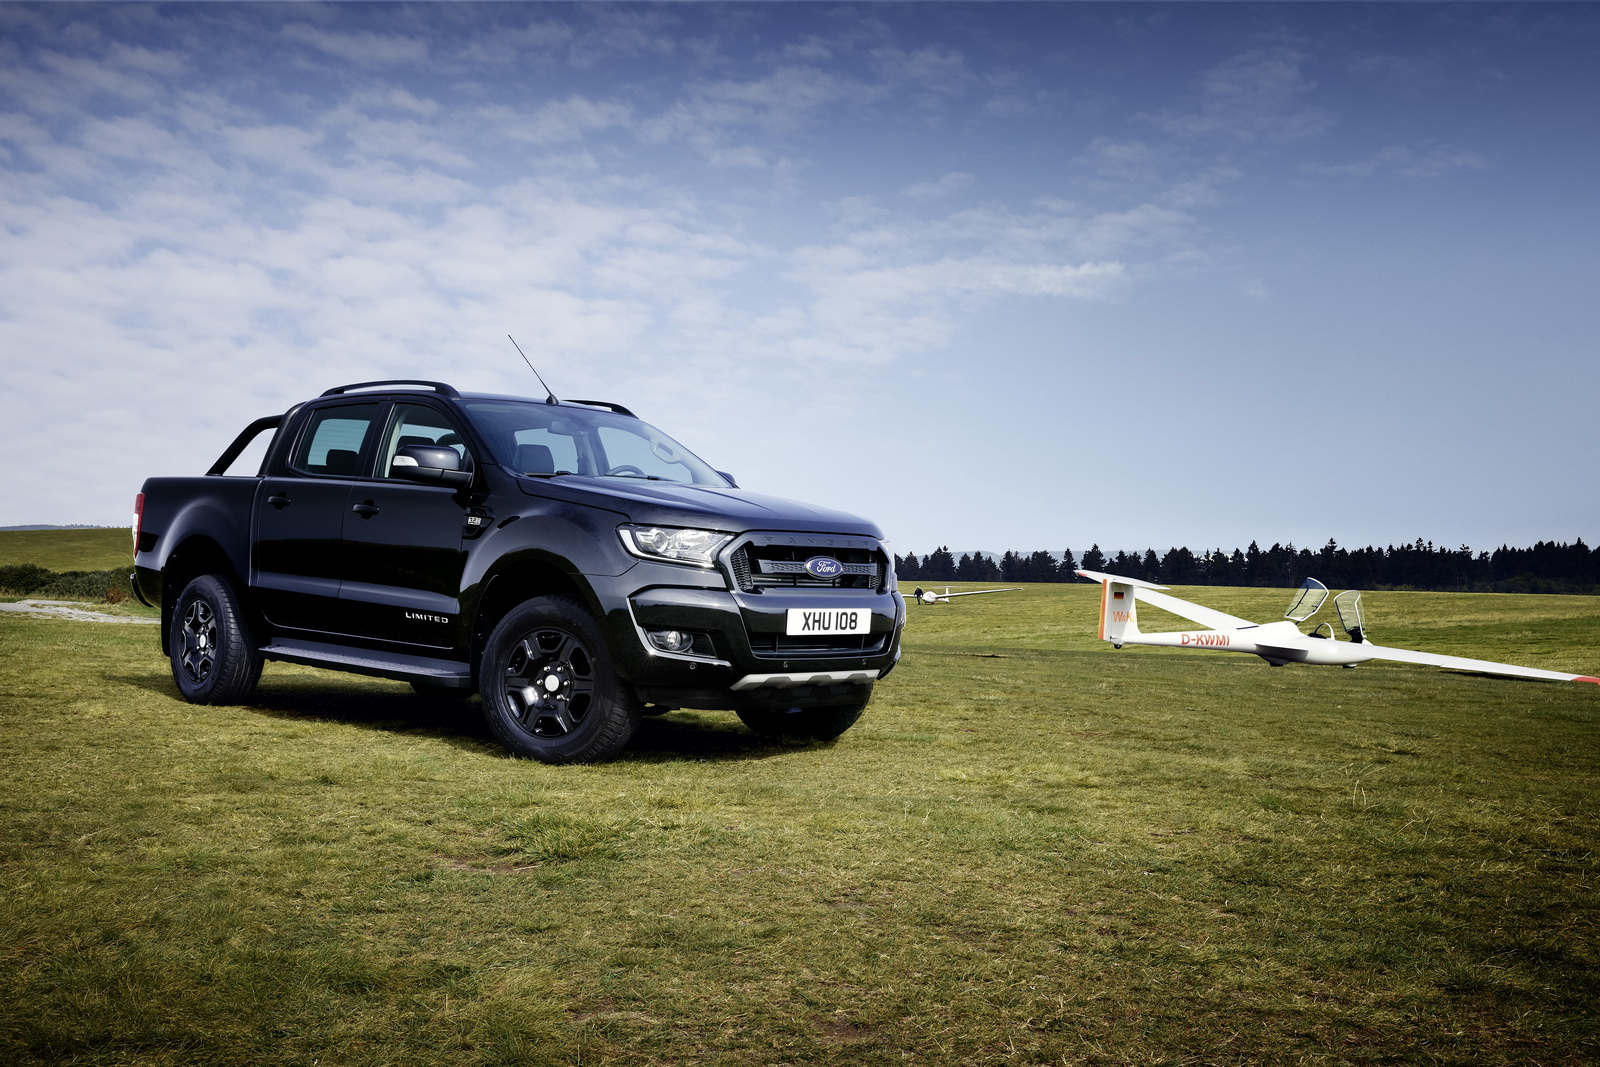 Top 2018 Ford Ranger Black Edition Limited To 2,500 Units - autoevolution ED54